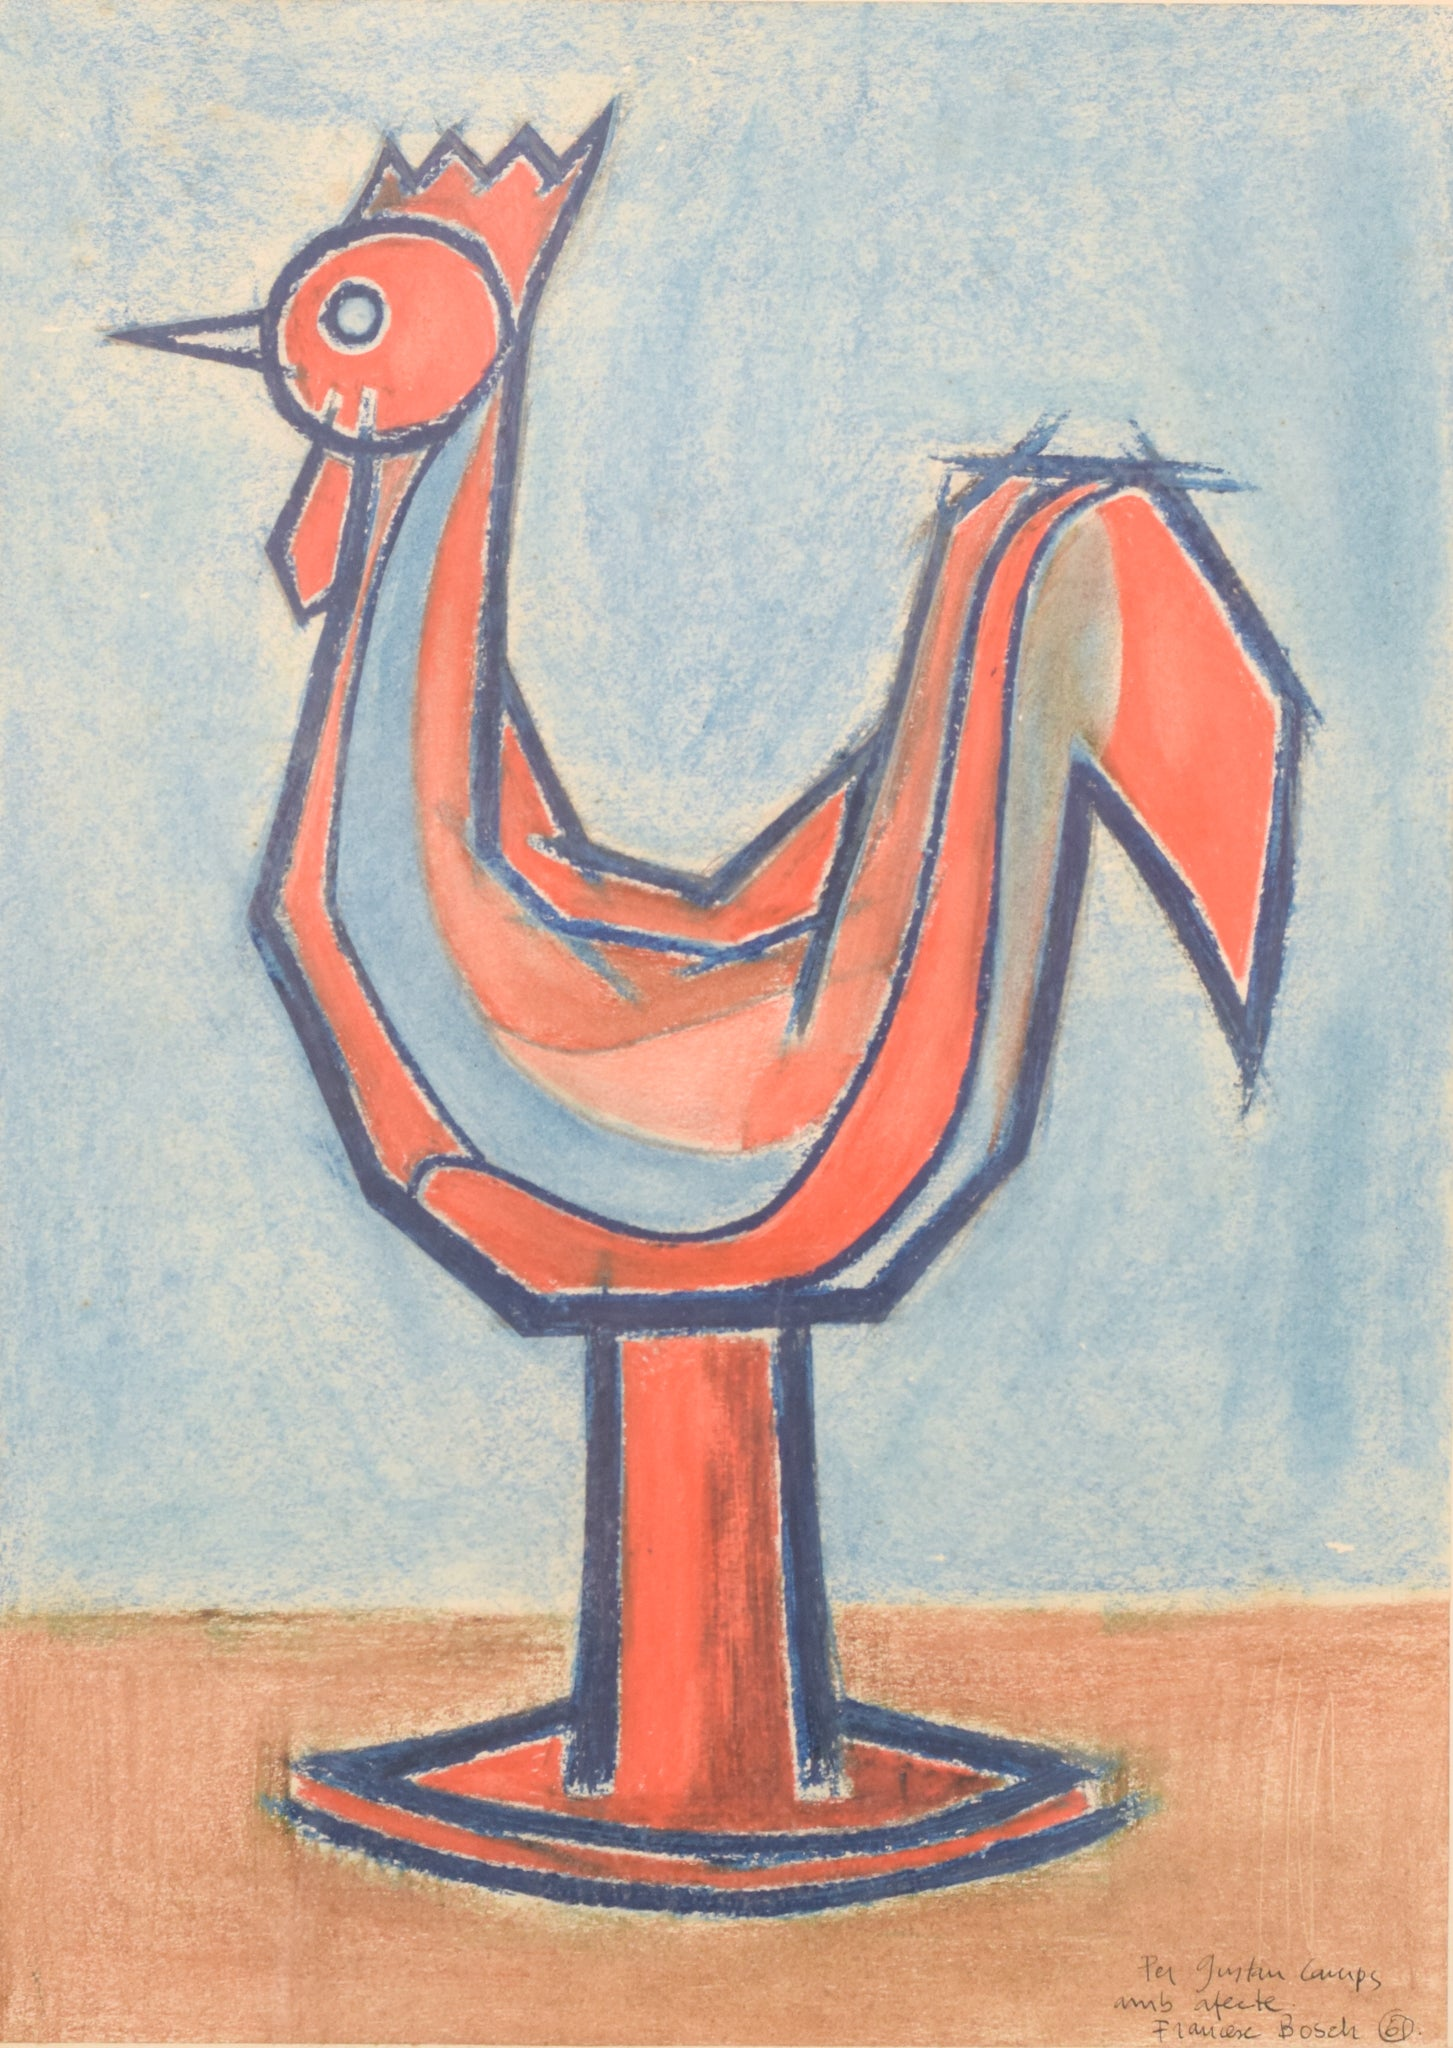 Modernist Pastel of a Cockerel Figurine by Francesc Bosch